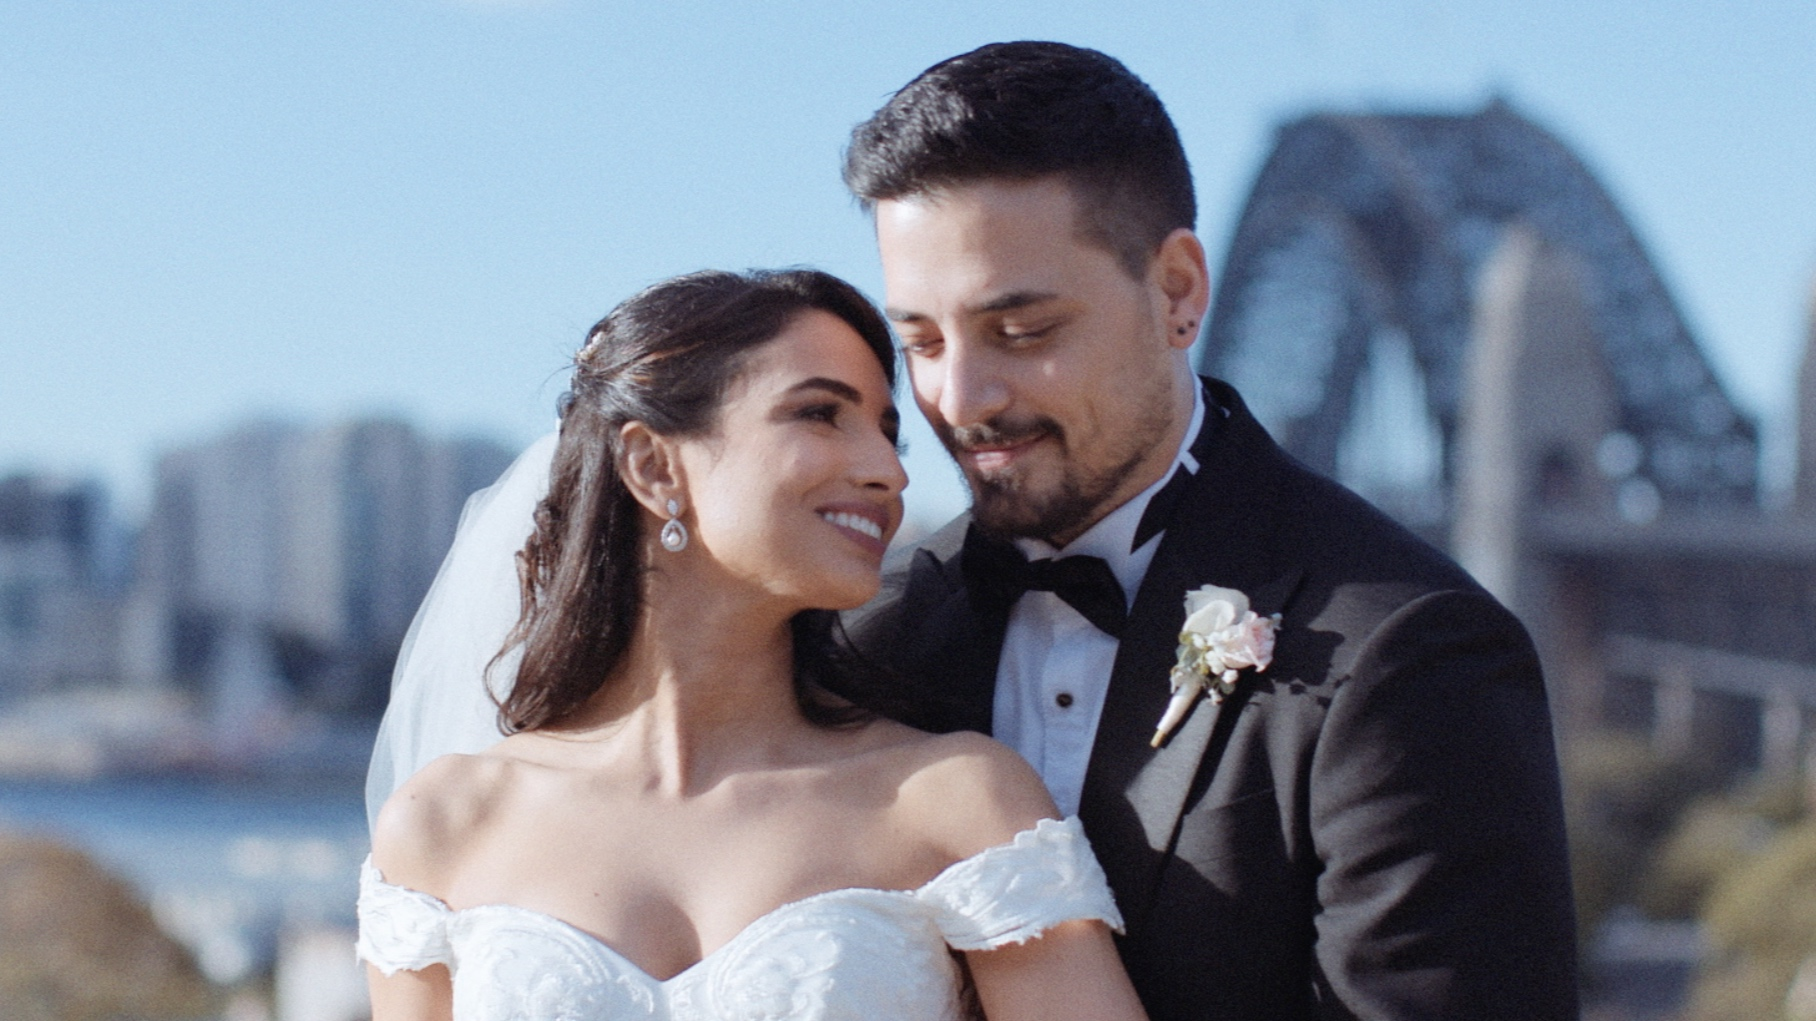 Wedding Video - We provide full day documentation and/or highlight cinematic wedding videos.